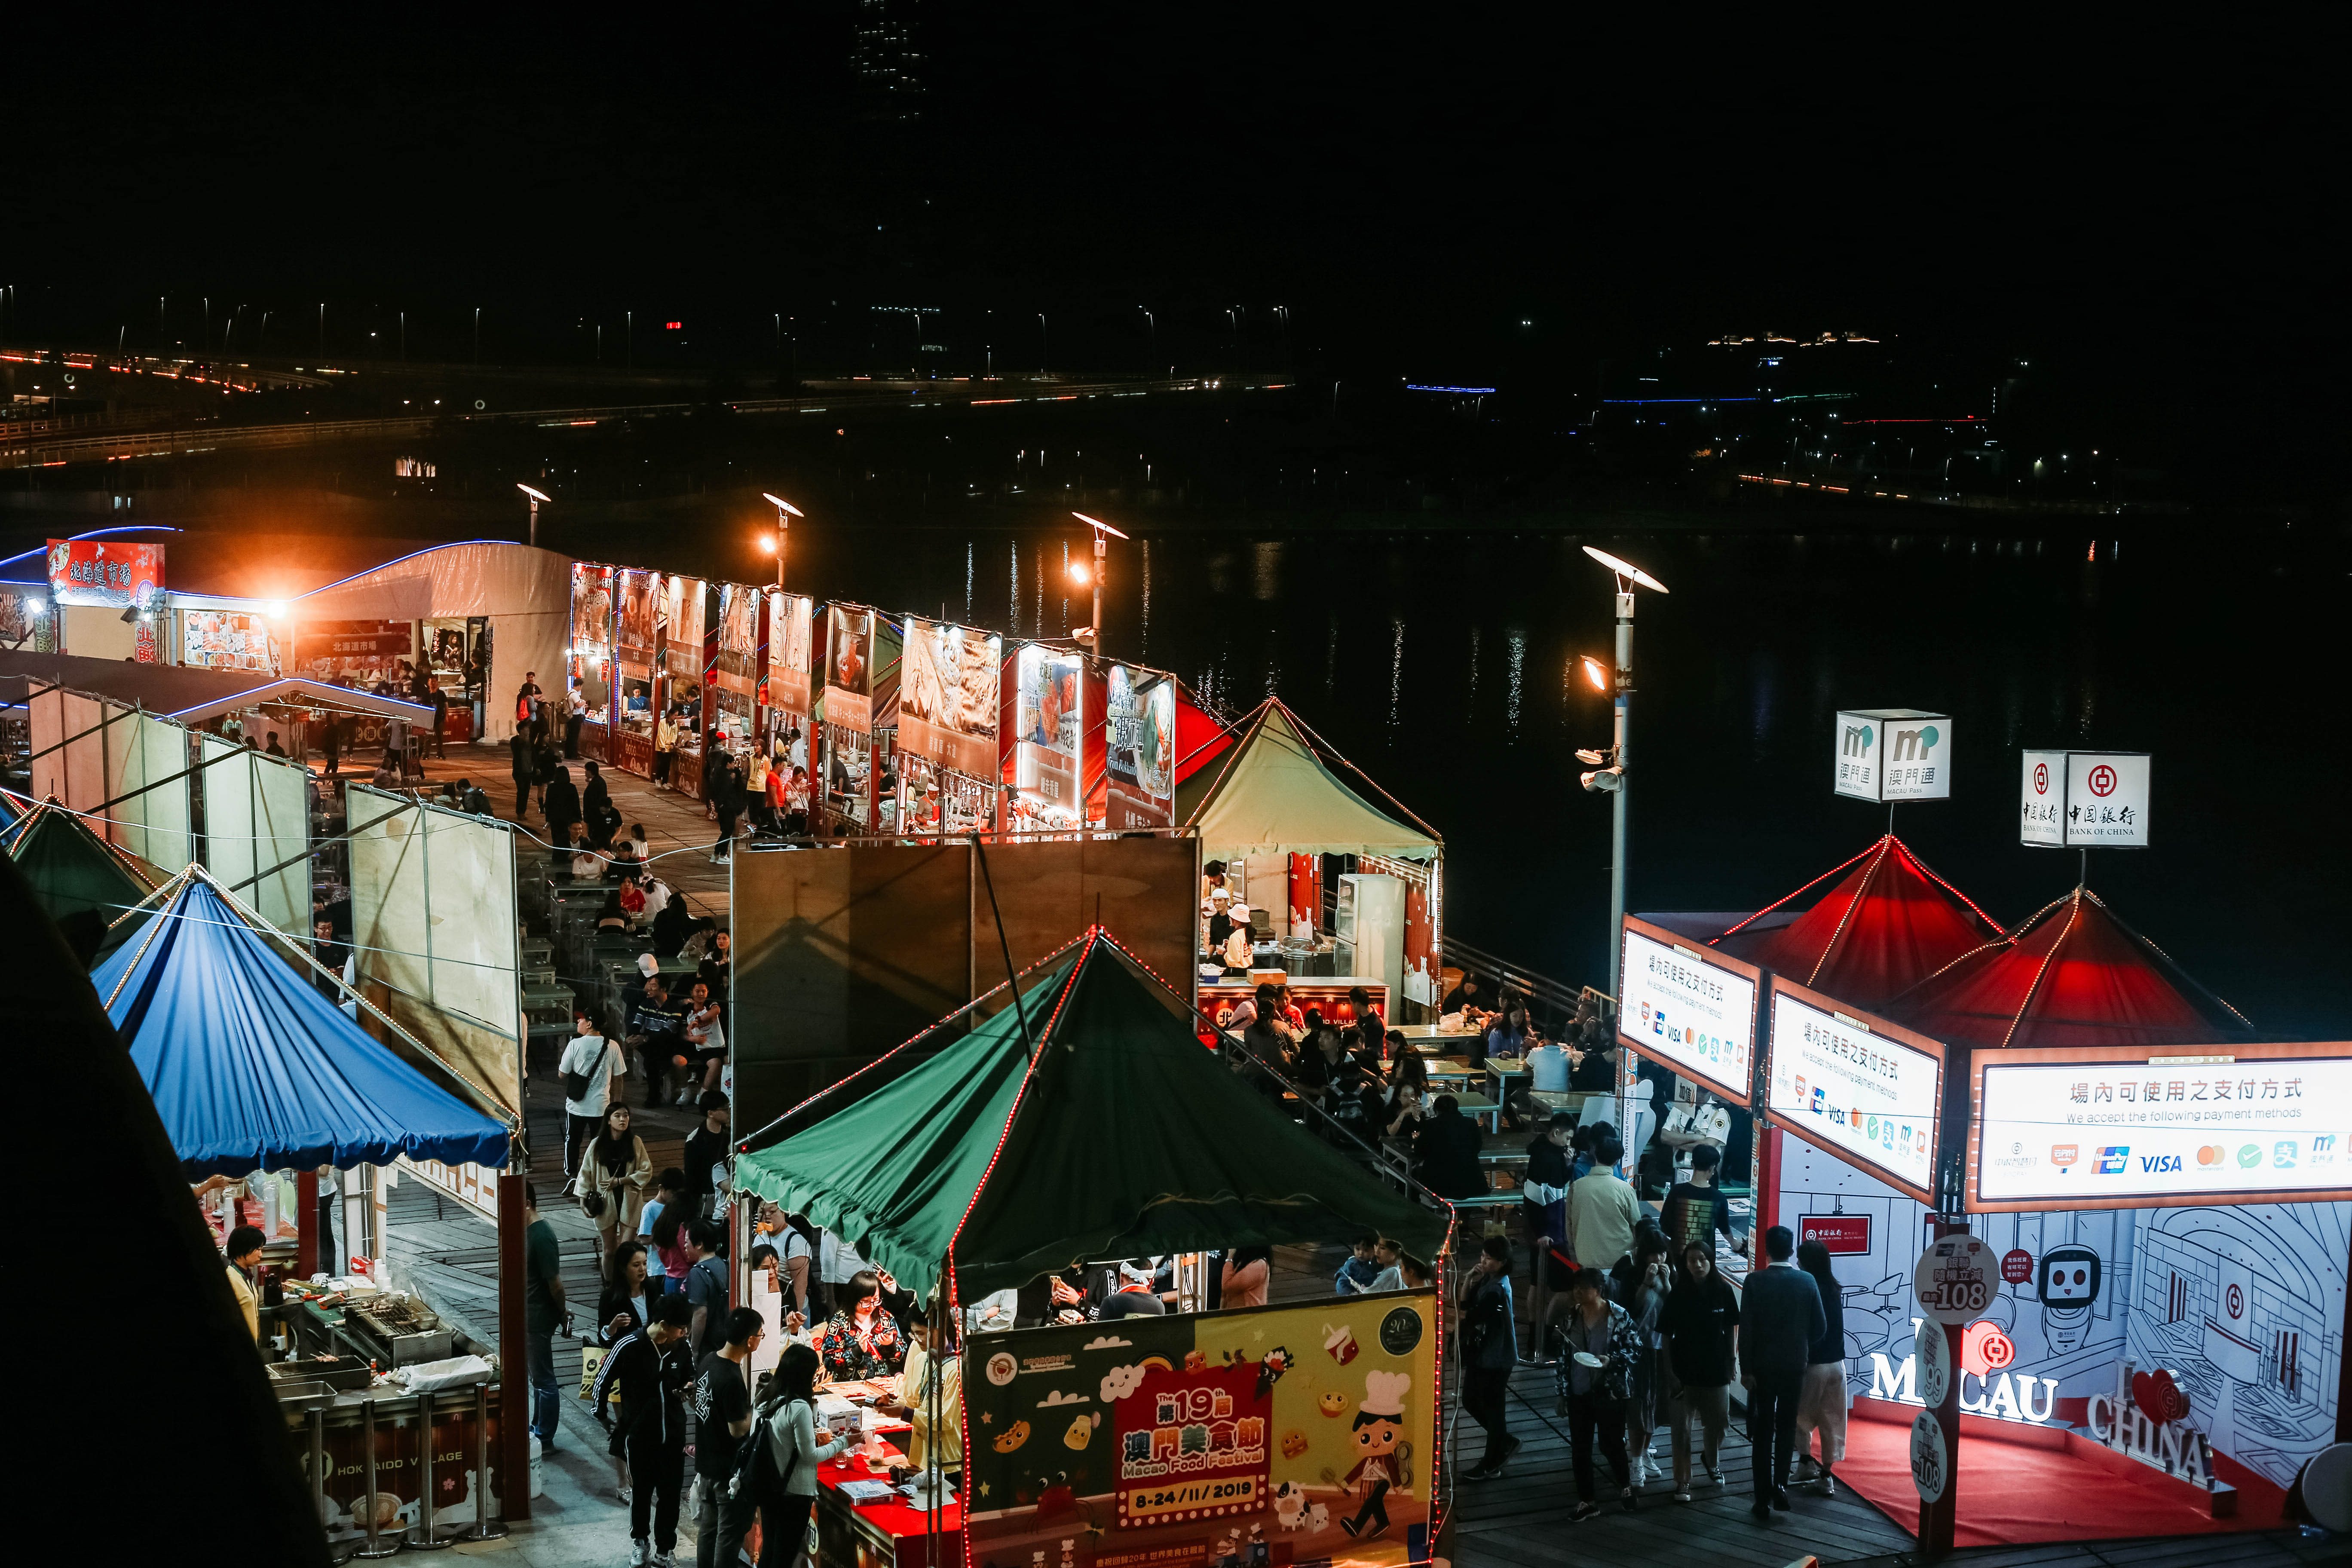 Macau Food Festival 2019 Exterior View from Above